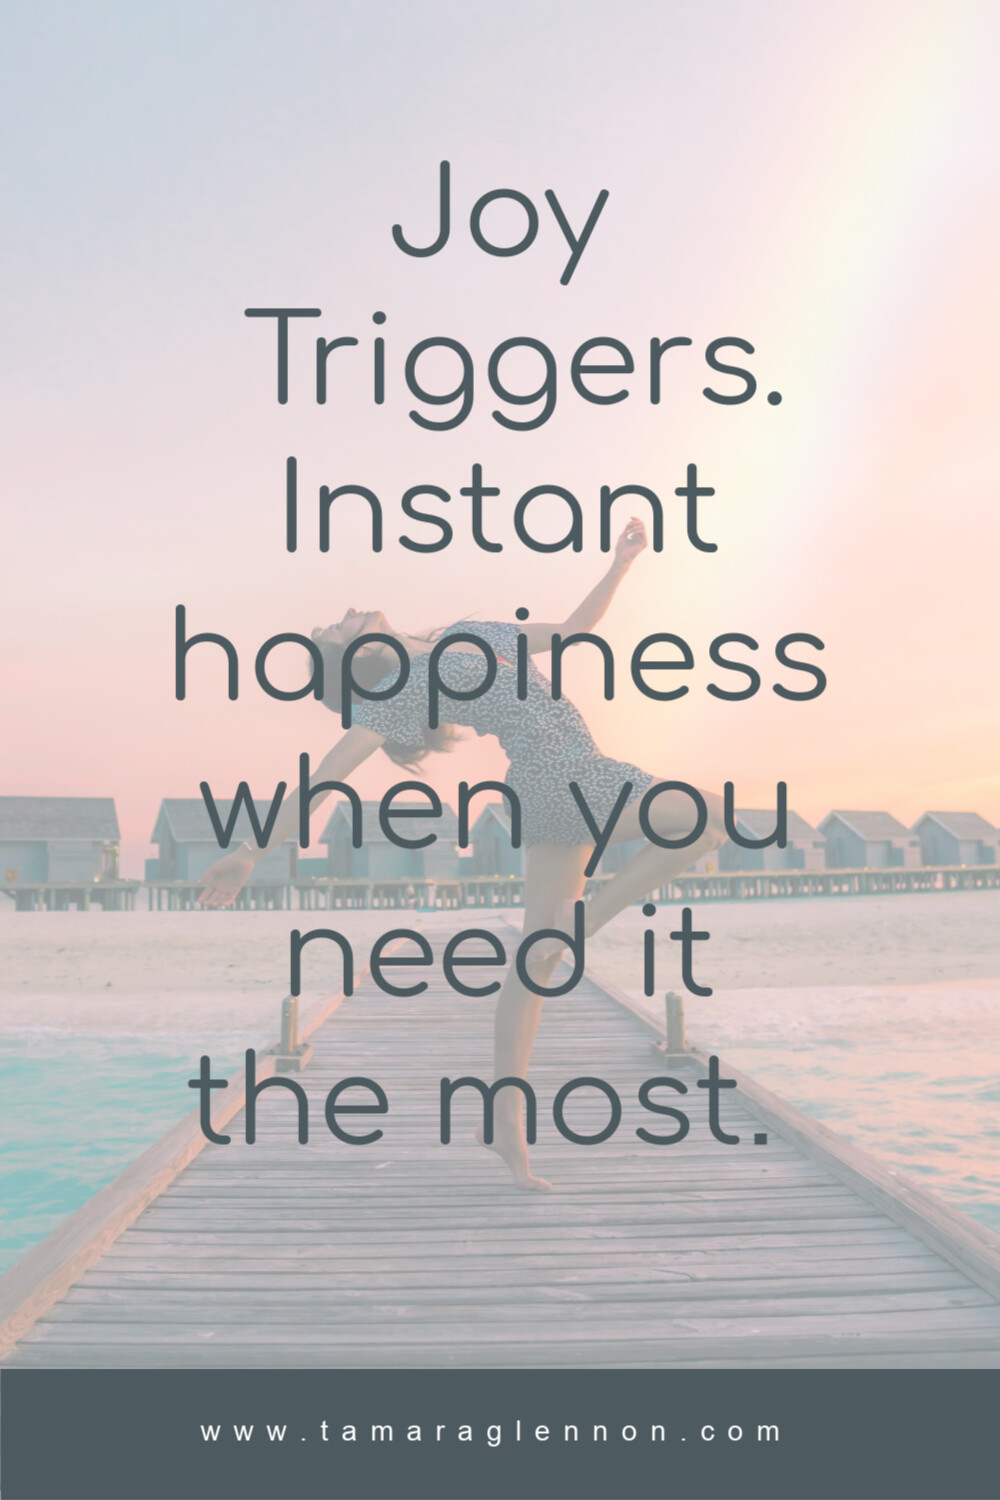 Joy Triggers: Instant happiness when you need it the most.